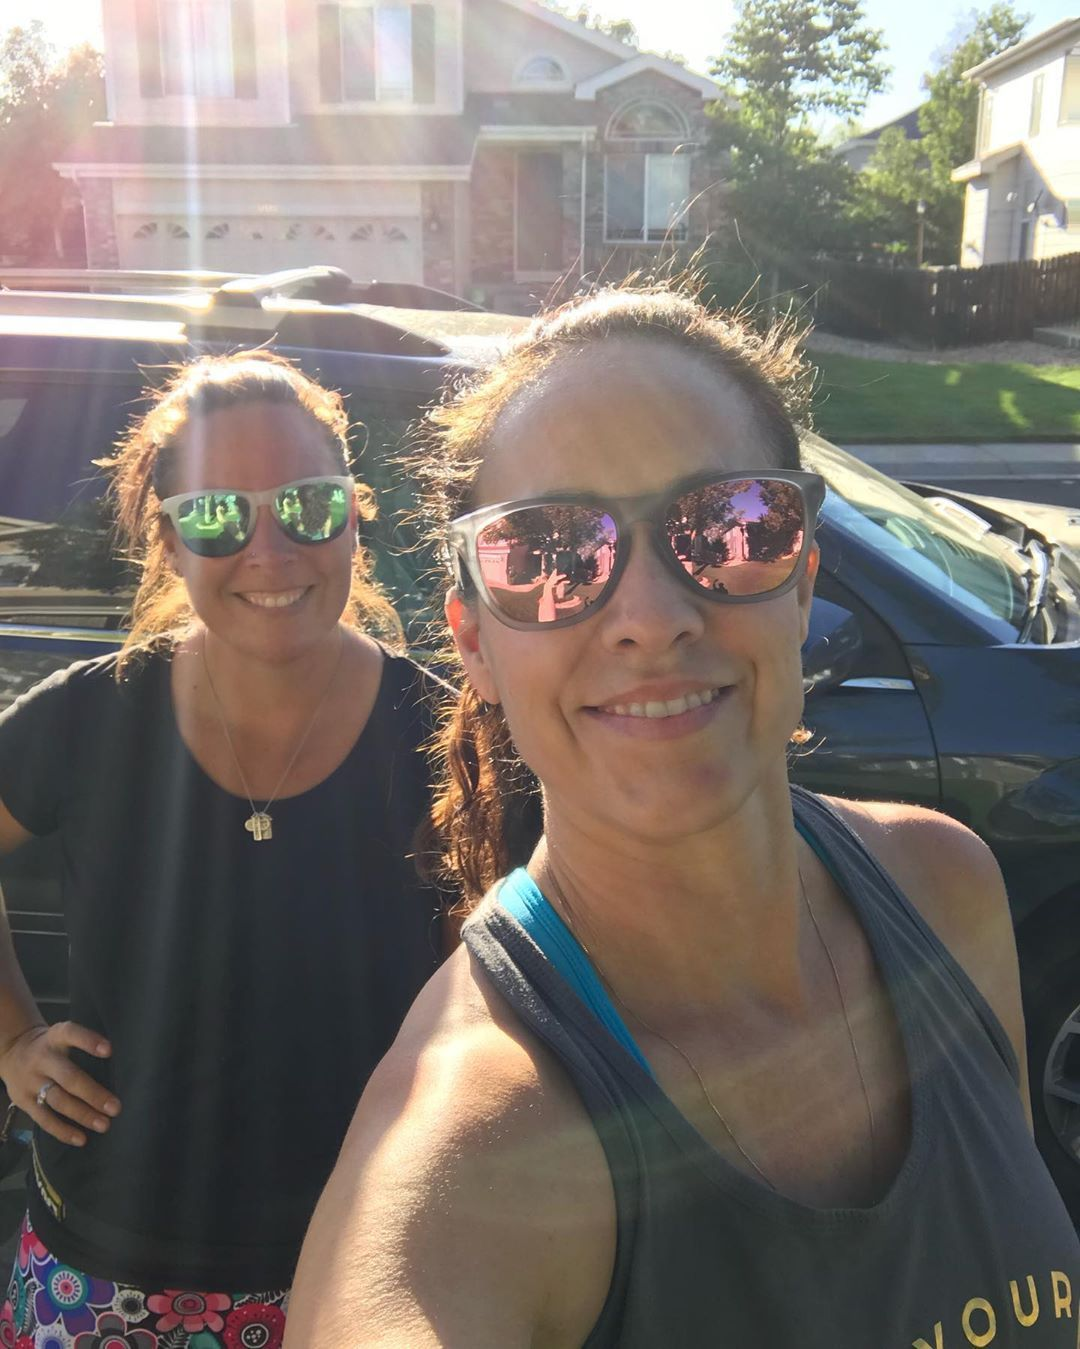 """Don't think just go out and run. "" 87° out, just drank a Dutch Bros , don't have my run clothes on, haven't eaten since the cupcake for breakfast ????????‍♀️????????????. But yep let's bust out 3 miles on the week we are supposed to do nothing ????????????‍♀️ clearly we don't ever follow directions ????????????. Marathon training run 27 done. Total training miles so far 198. #myrunningbuddies #marathontraining #yesican #goals #girltribe #girlswhorun #noexcusesnoregret #dutchbros"